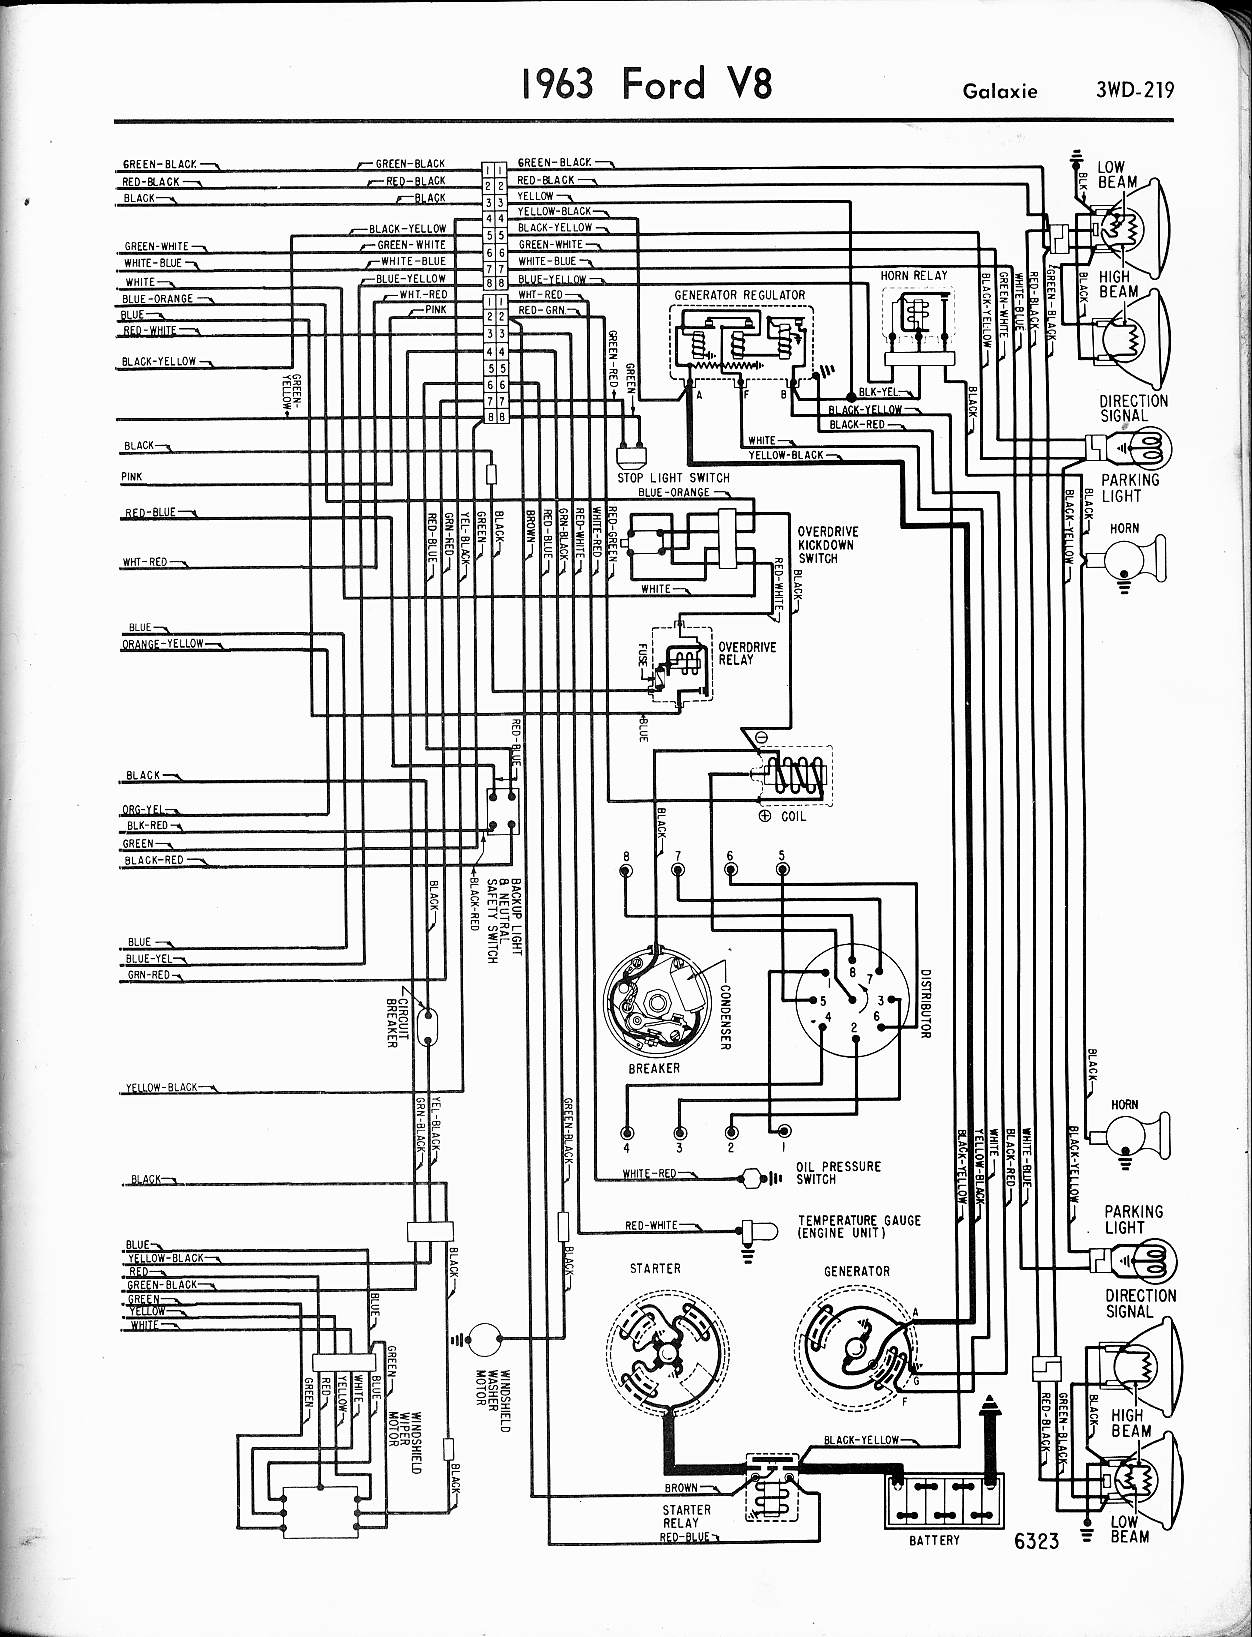 1967 Firebird Fuse Box Simple Guide About Wiring Diagram 1994 Pontiac 65 Galaxie And